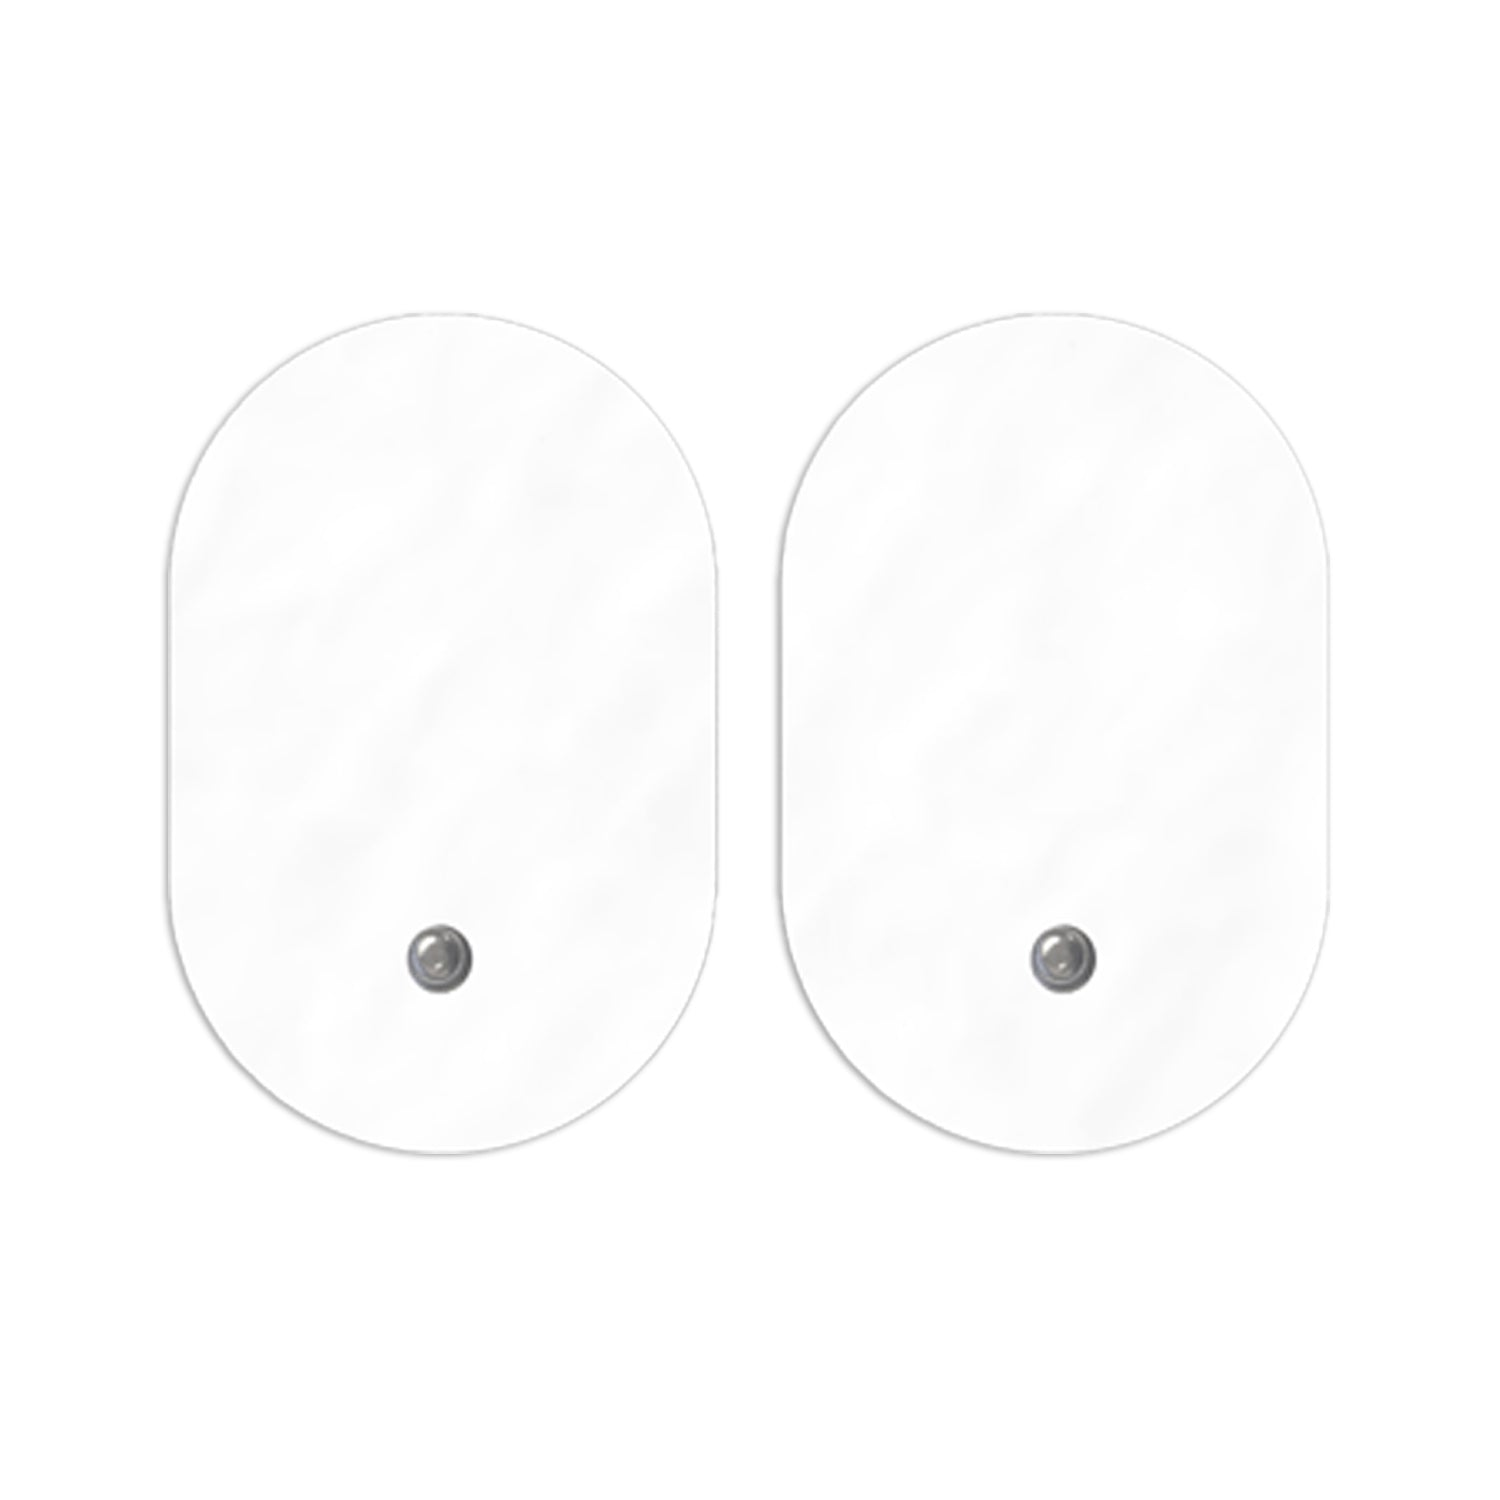 Pair of Snap-On Large Oval-Shaped PET Pads - HealthmateForever